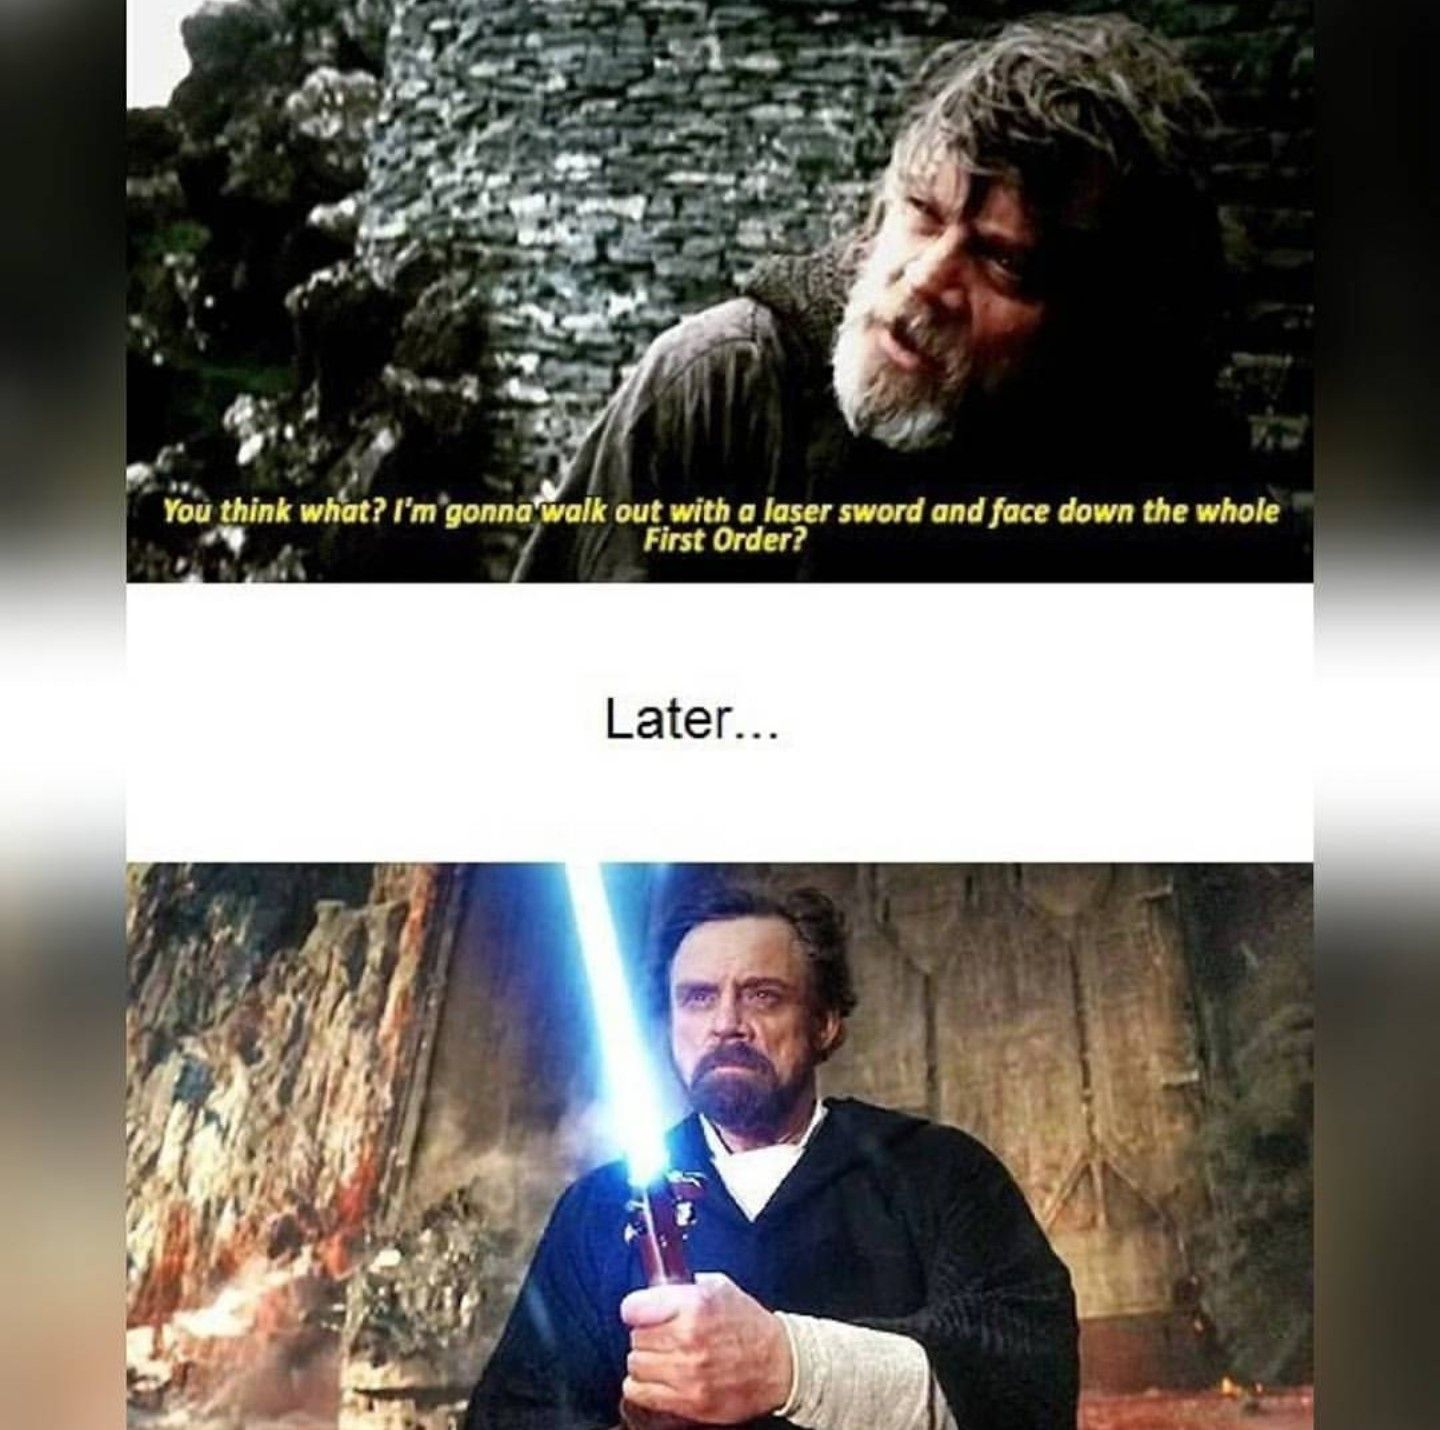 Pin By Taztoothless On Star Wars Things Star Wars Humor Ray Star Wars Star Wars Memes